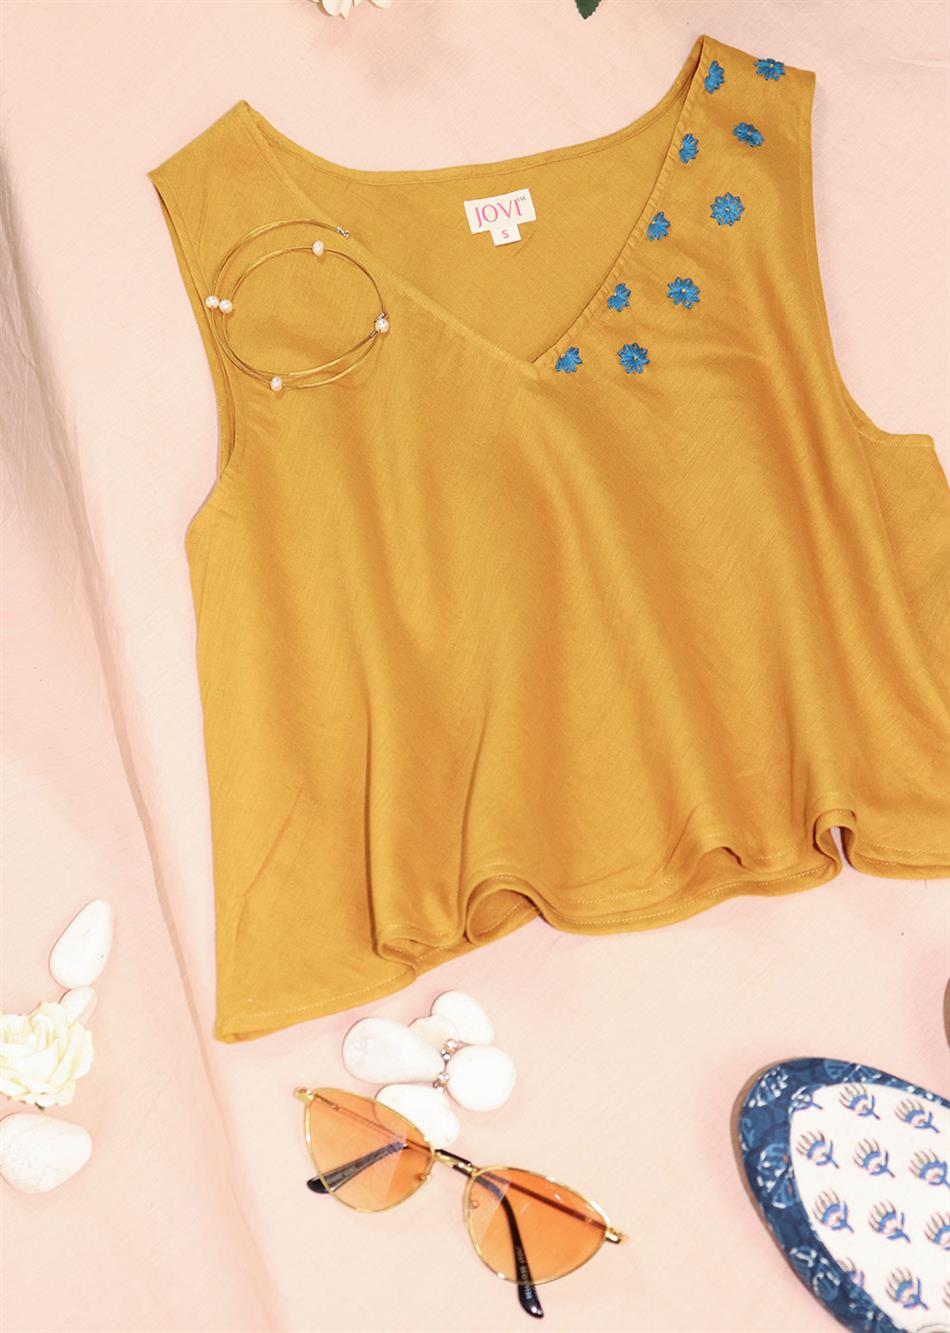 SUMMER V NECK EMBROIDERD TOPS (COLORS AVAILABLE) By Jovi Fashion